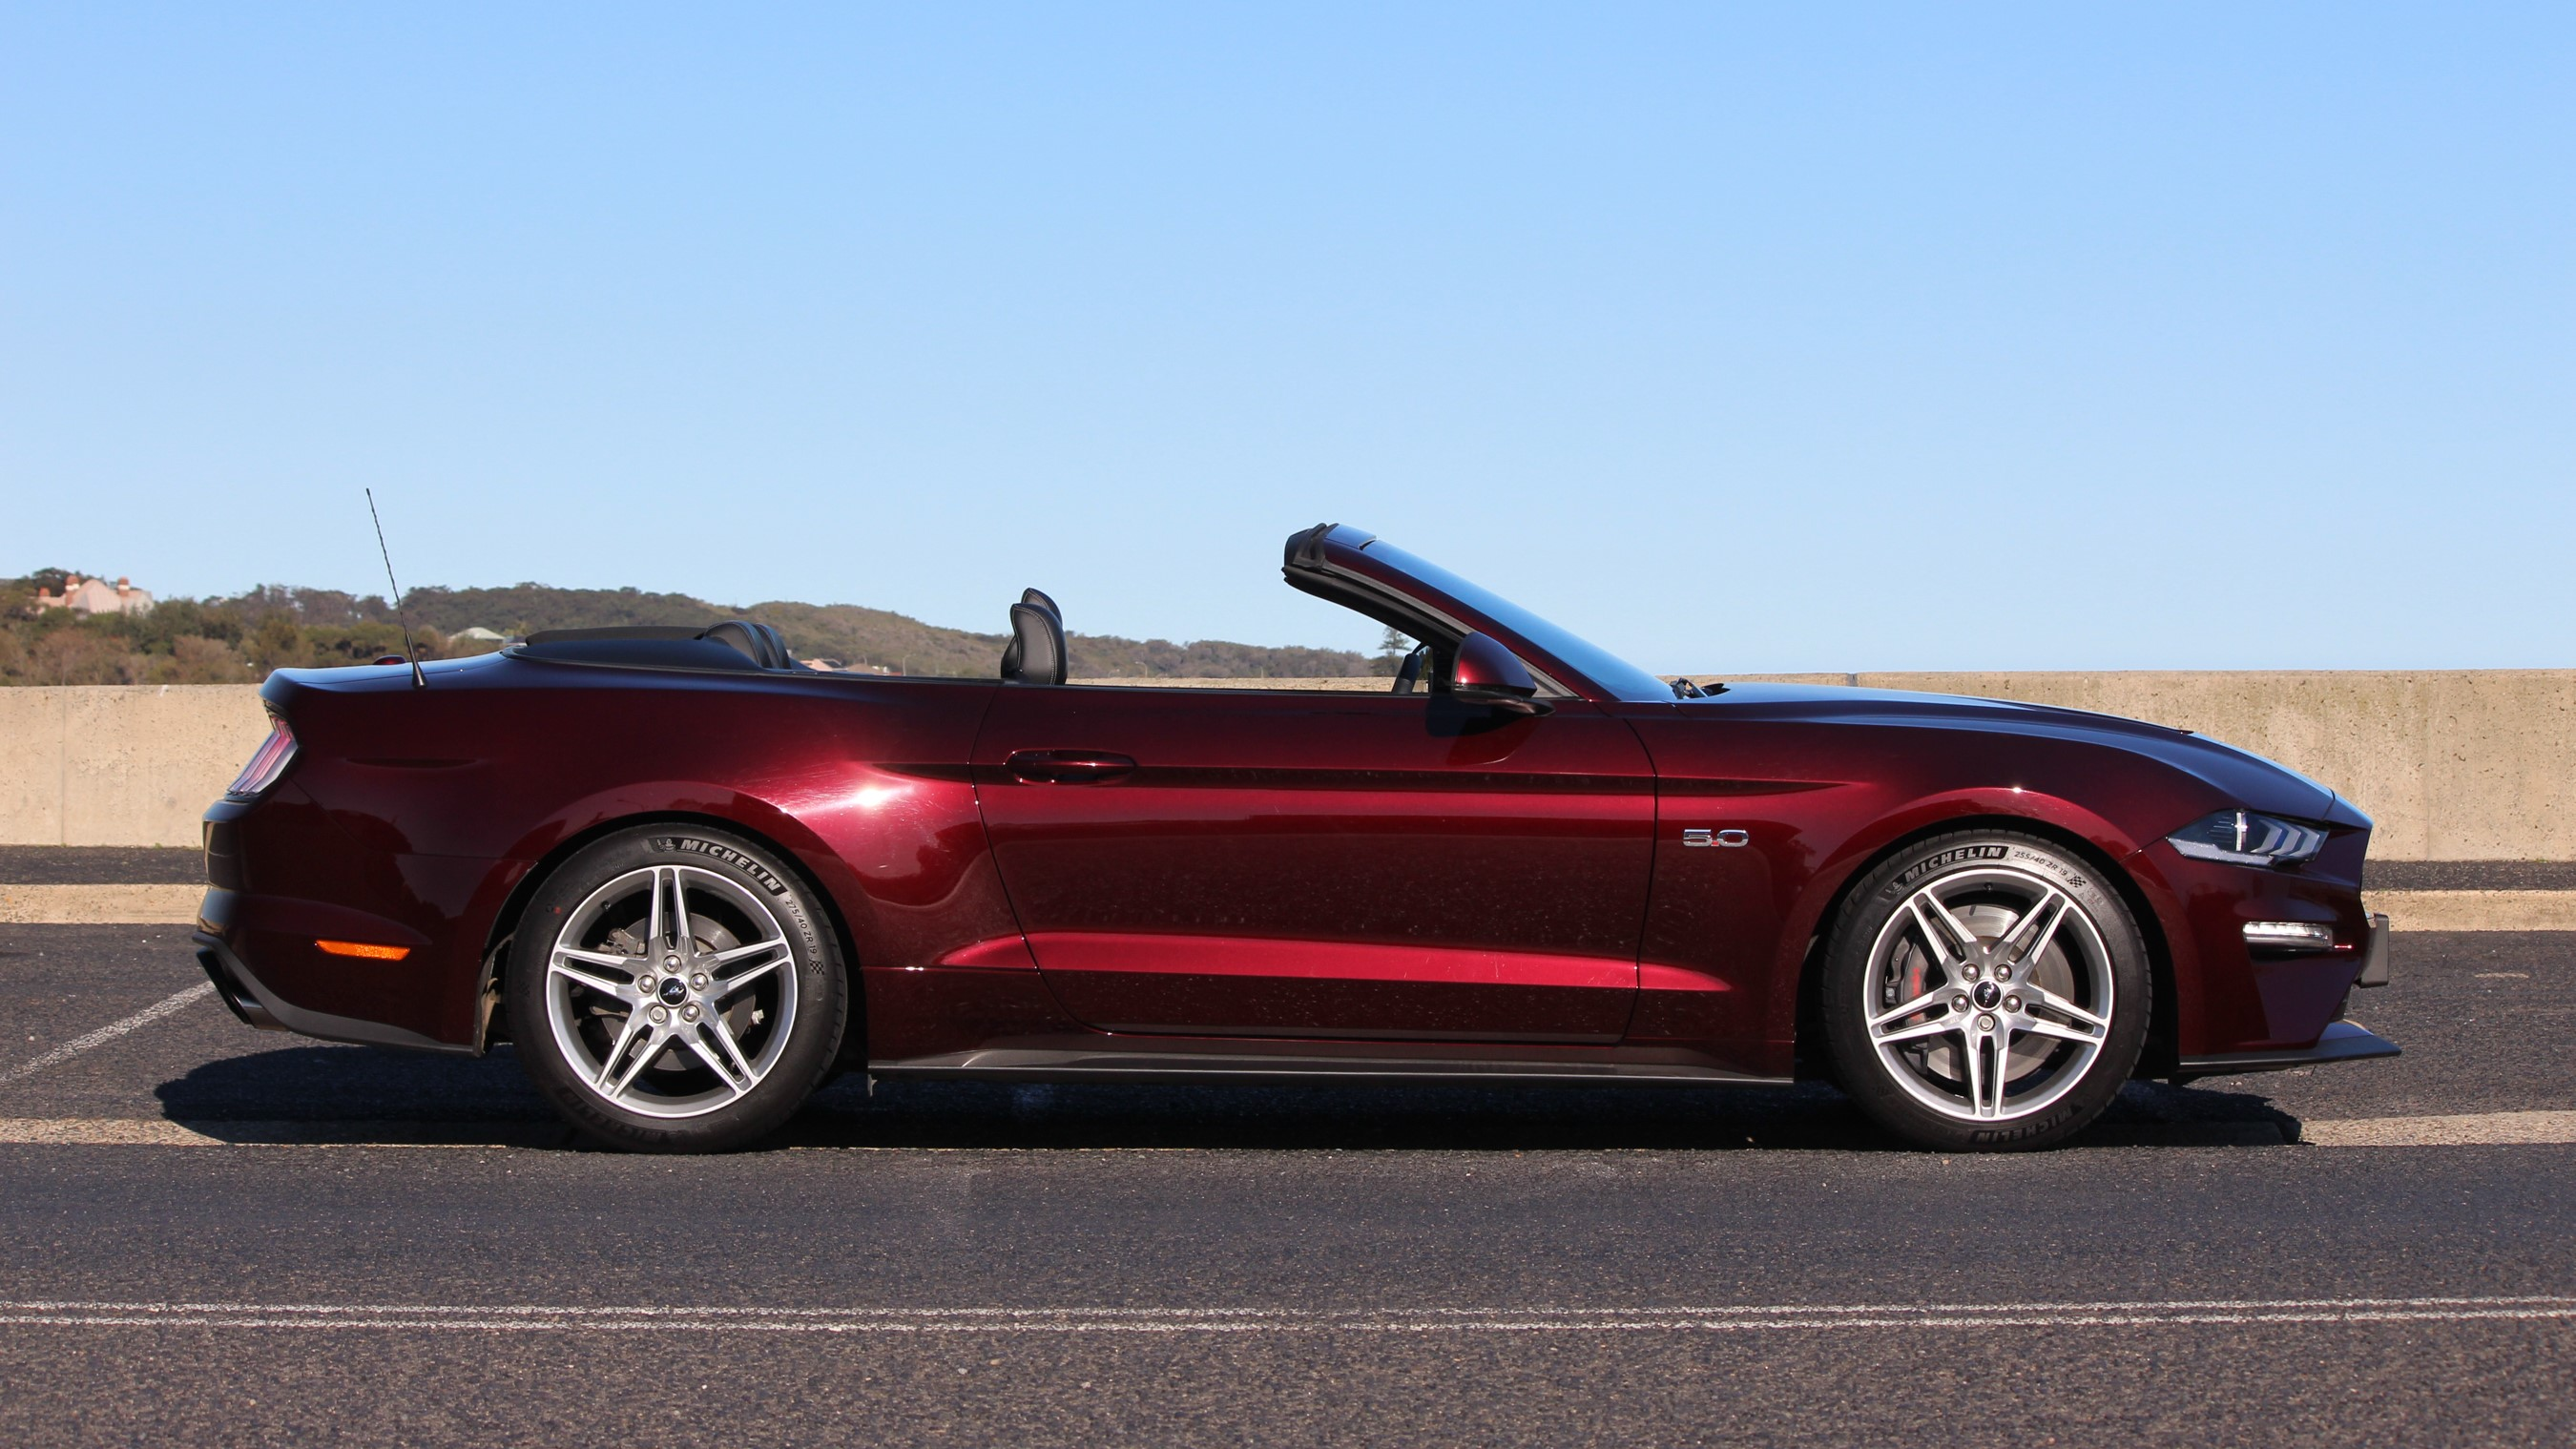 2018 Ford Mustang GT Convertible.